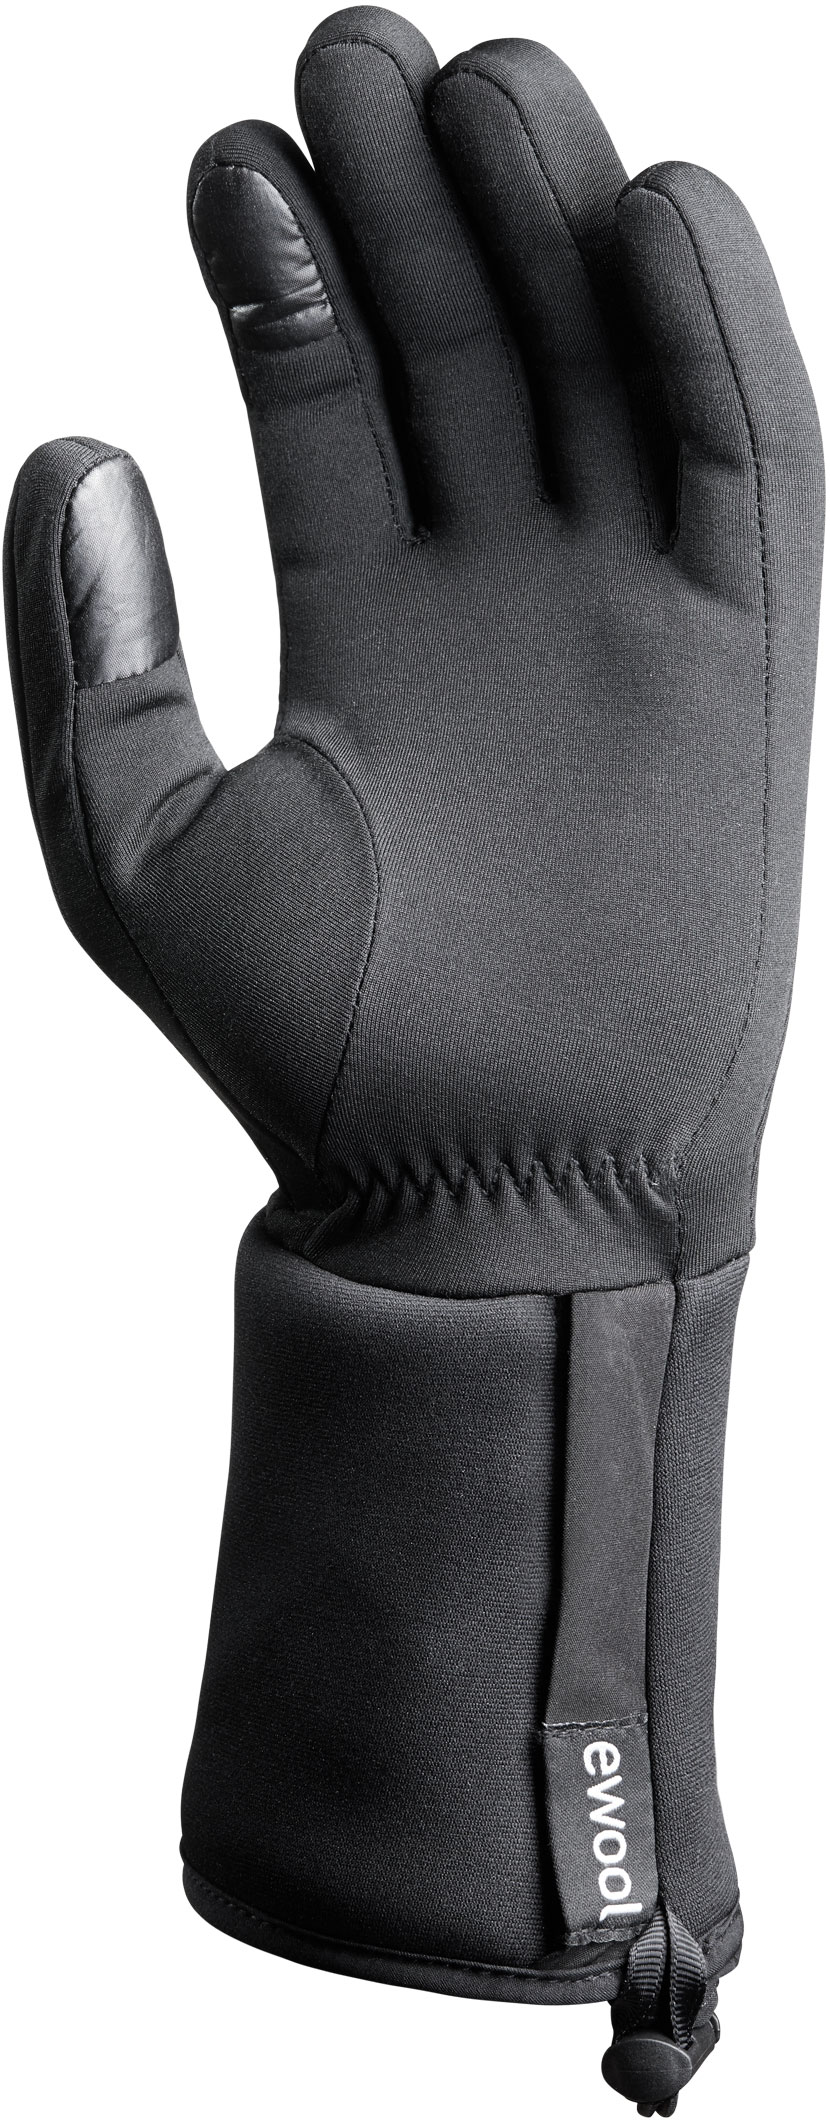 ewool® heated glove liner featuring touchscreen compatible fingers